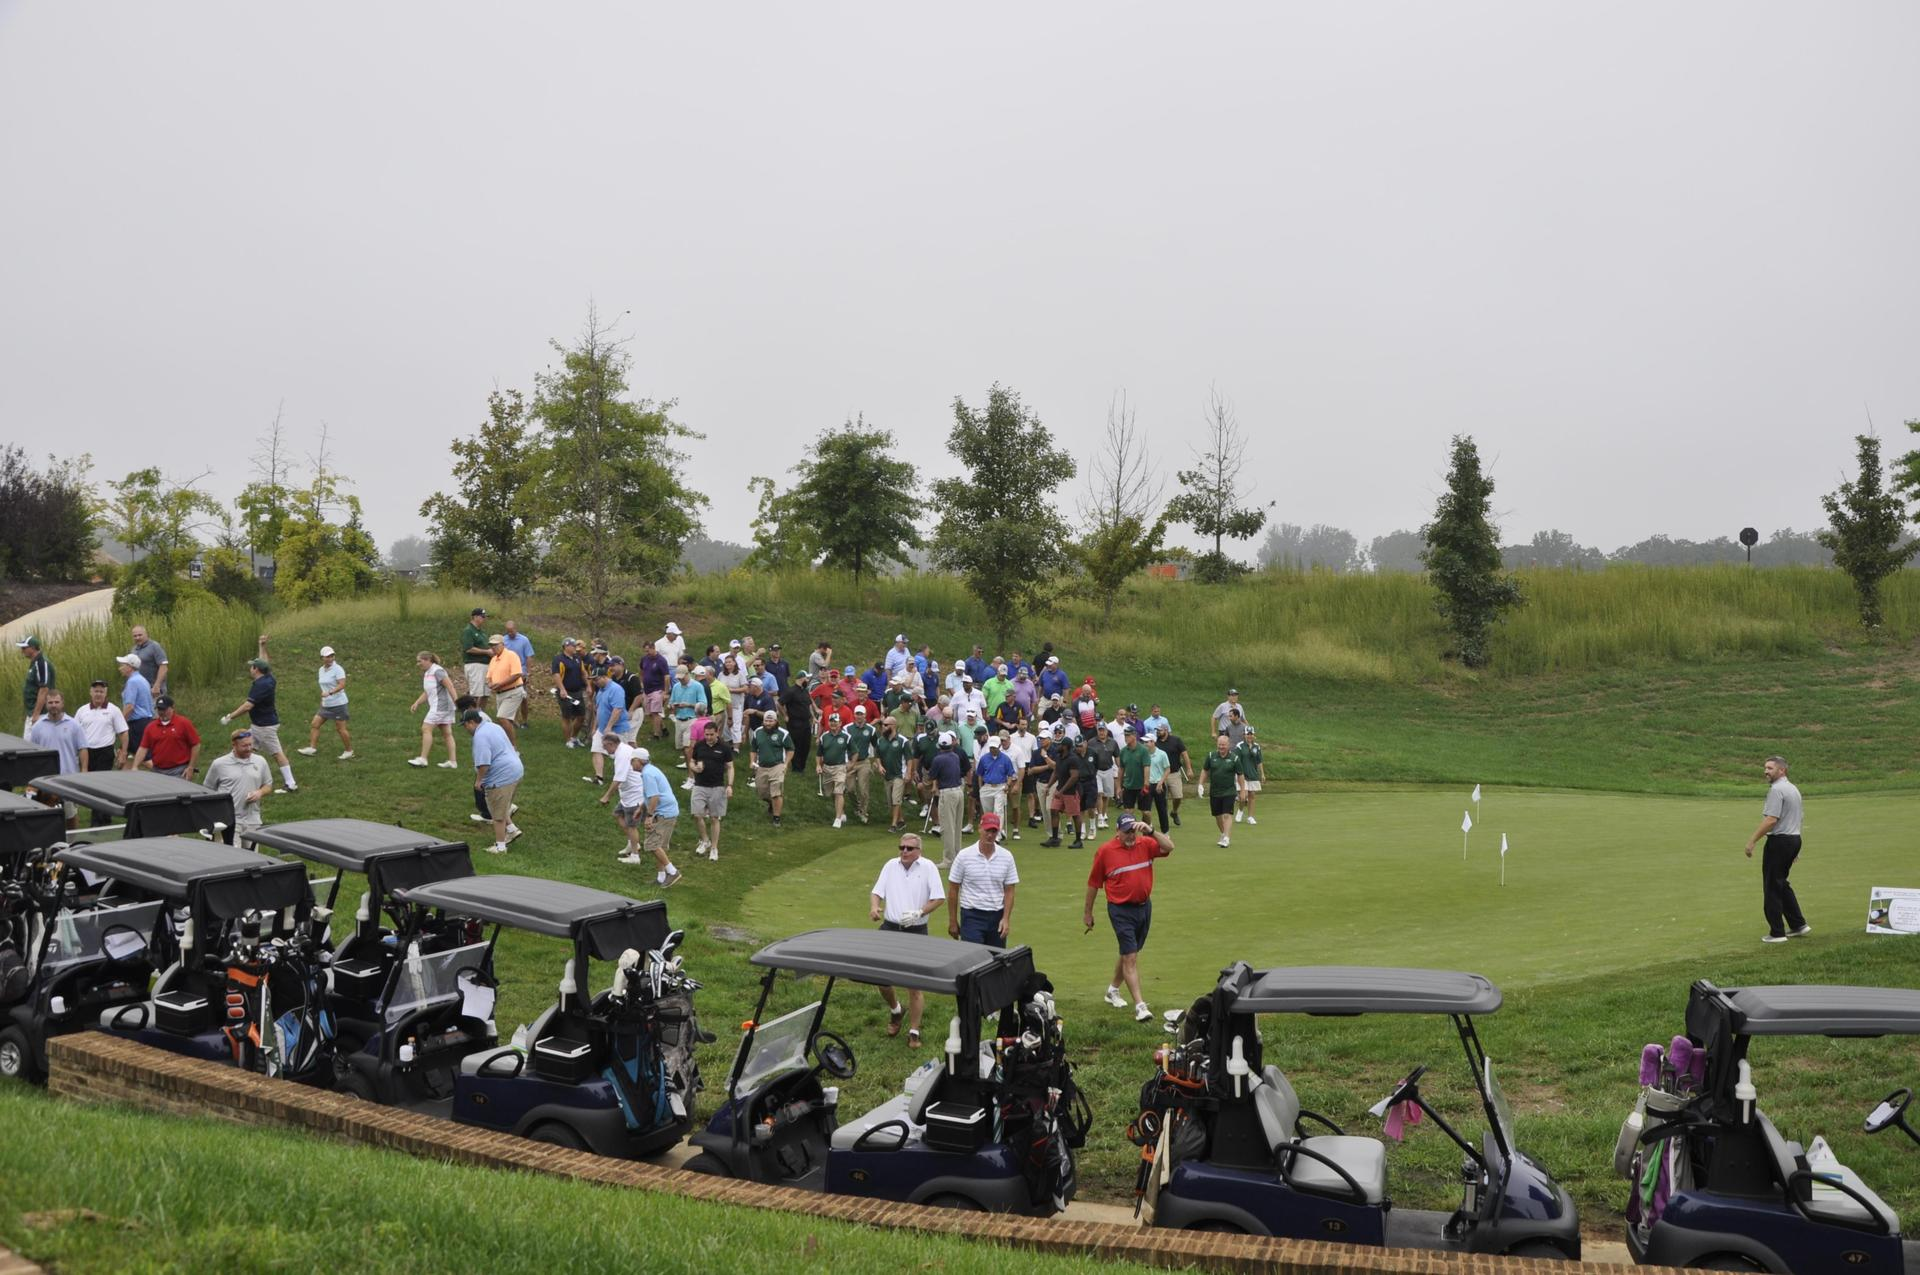 A view of golfers and golf carts